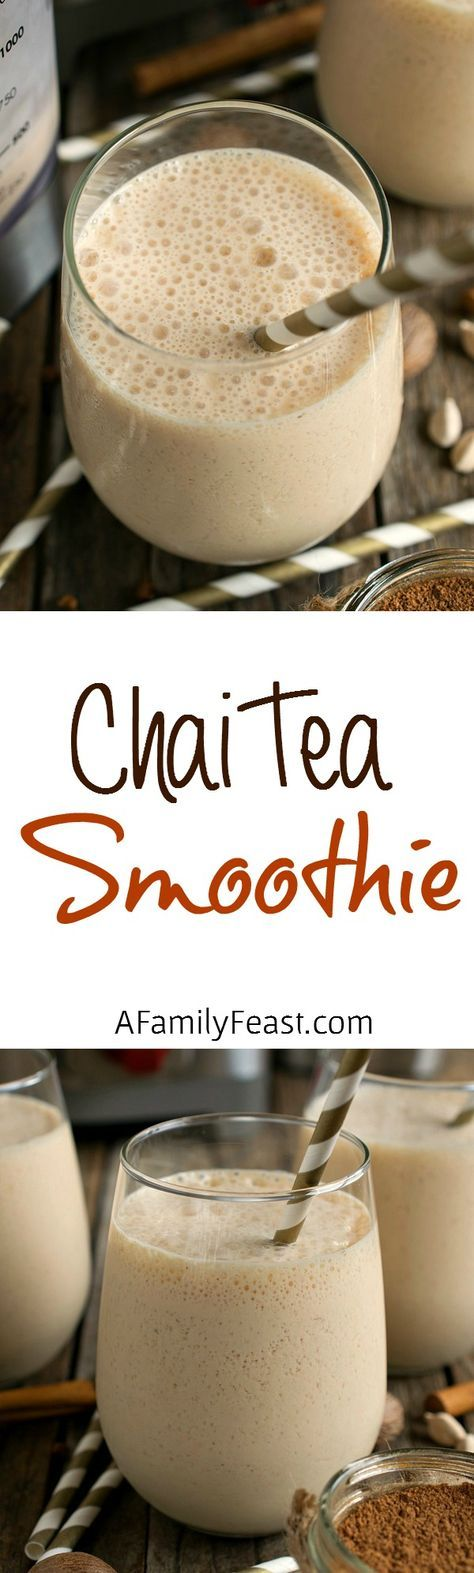 chai tea latte and weight loss